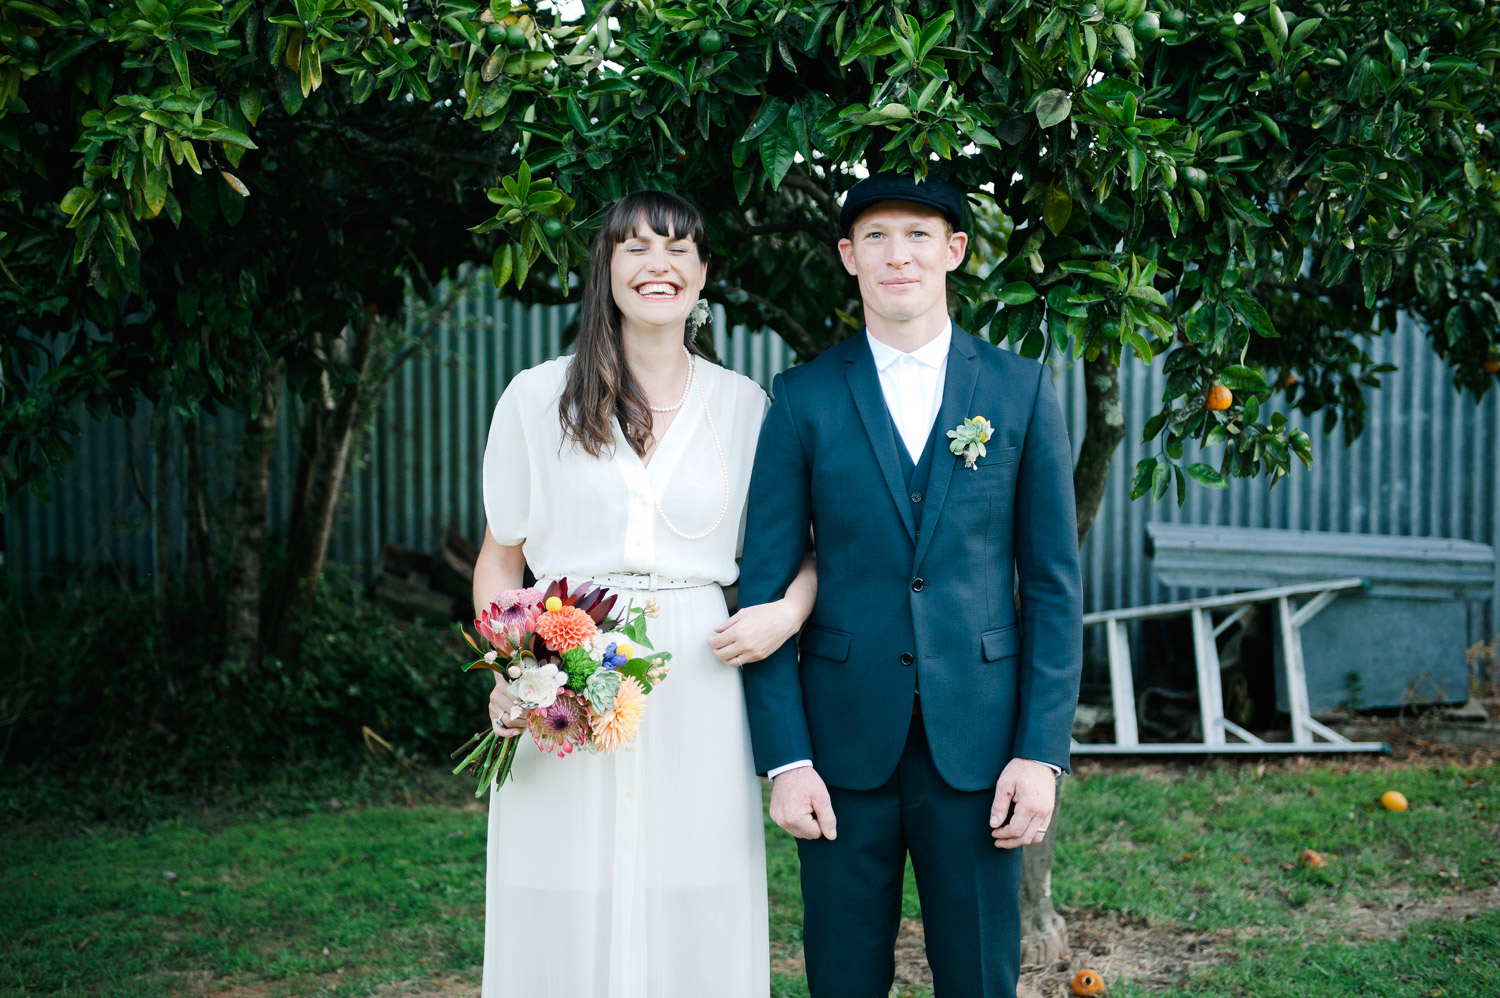 Katie_Mitchell_Photography_New_Zealand_Wedding_AJ_22.jpg